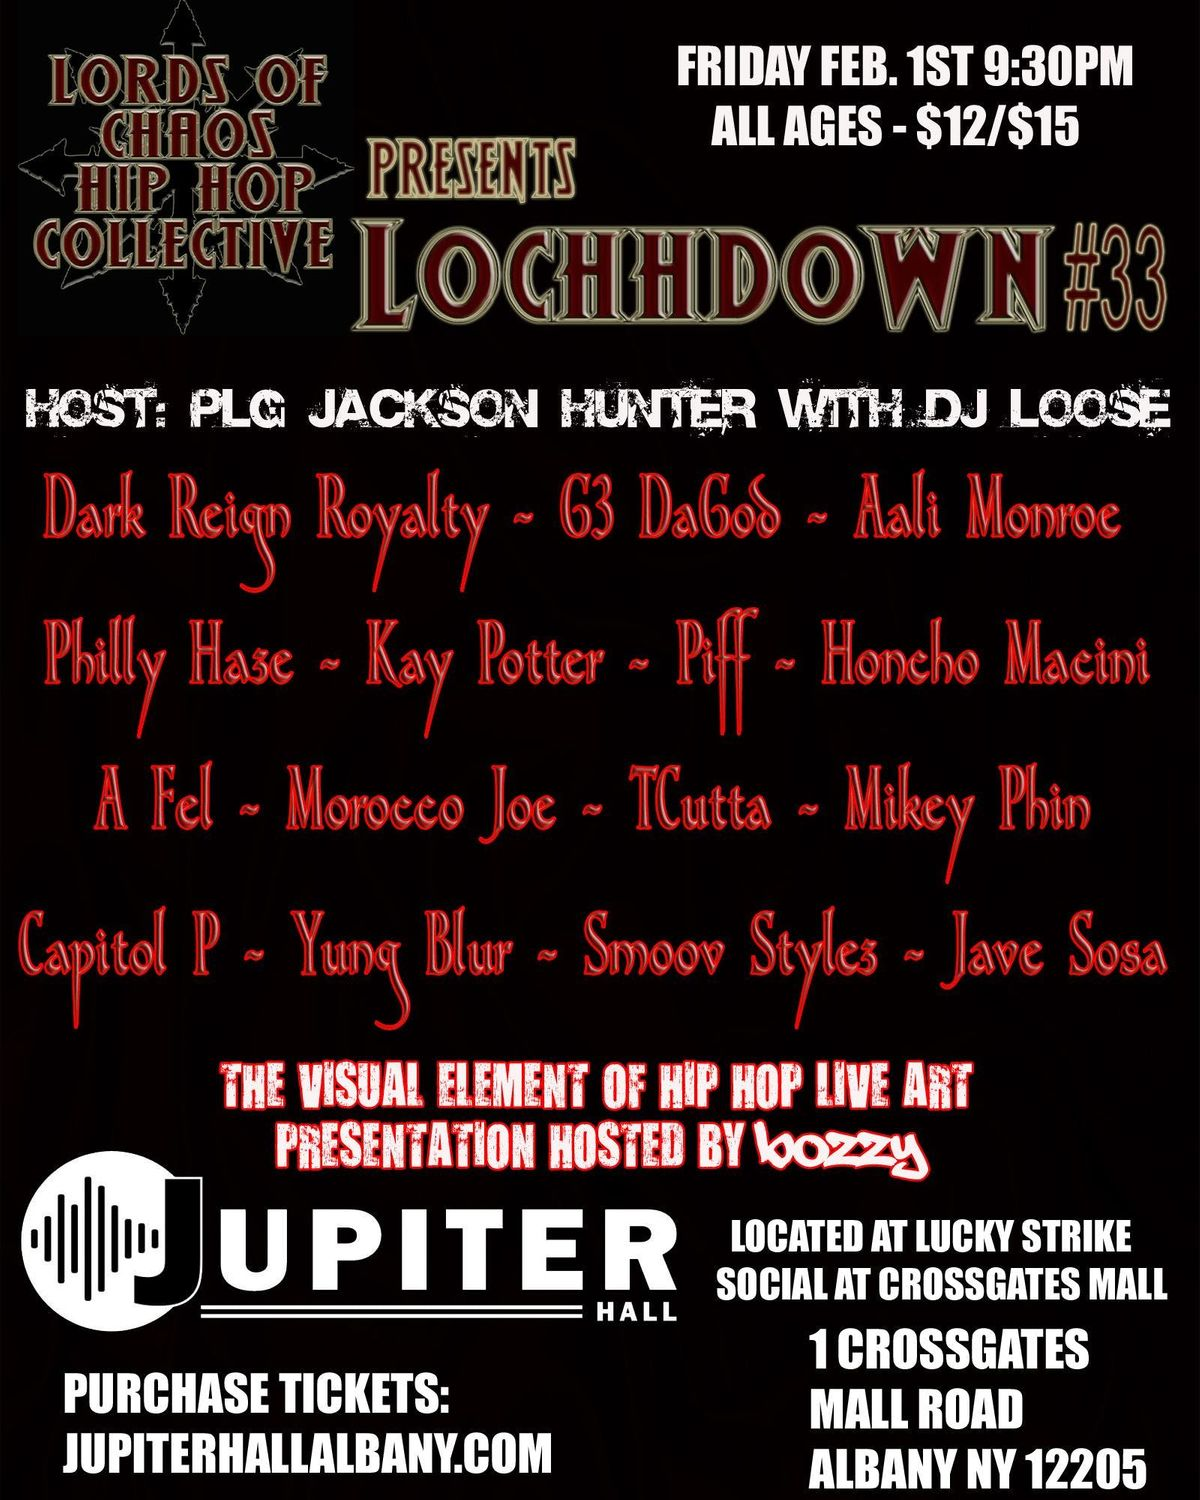 LOCHHDOWN 33 - The Visual Element of Hip Hop & live showcase - Jupiter Hall Fri Feb 1st